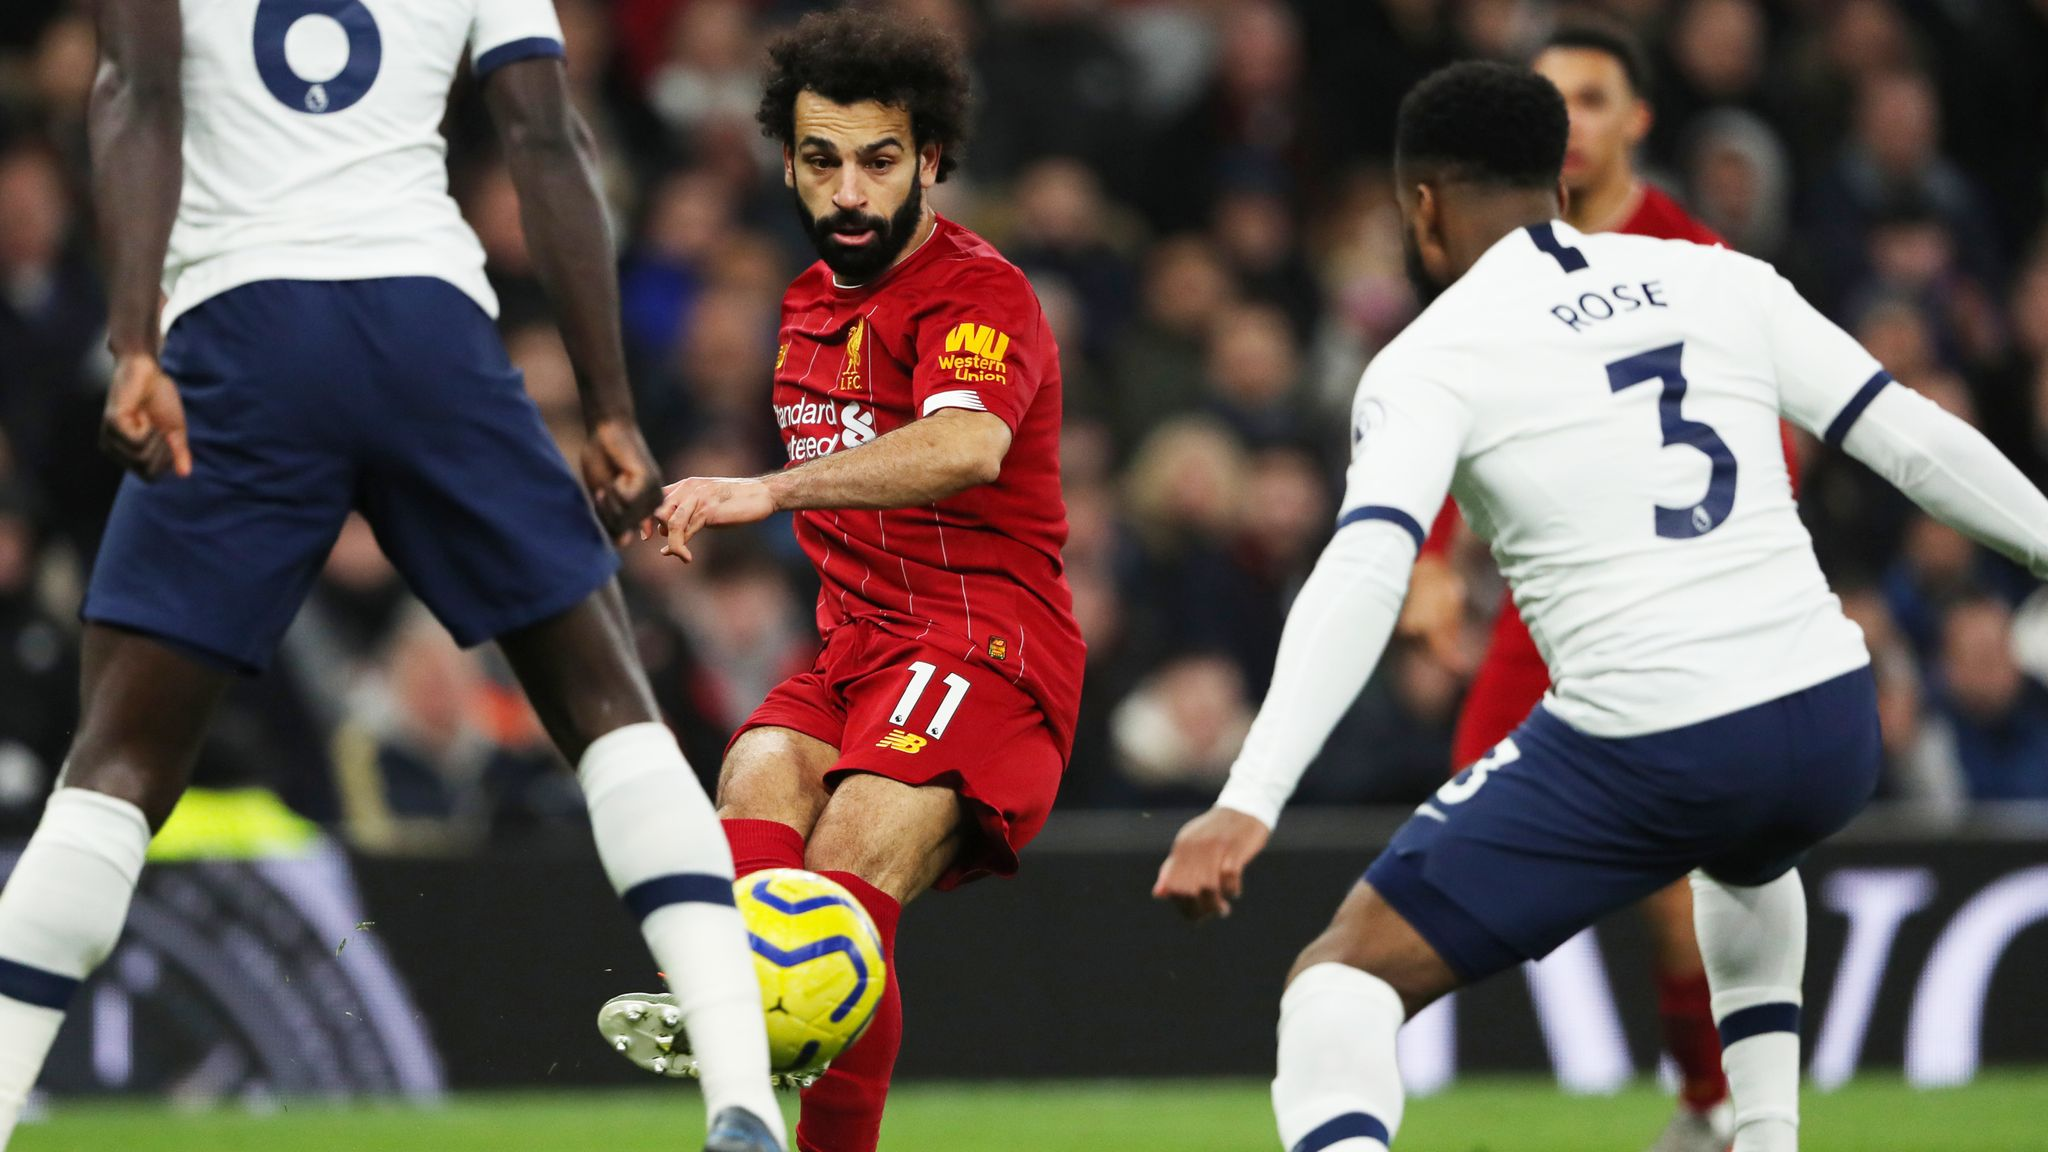 Mohamed Salah exclusive interview: Adapting at Liverpool and hunting down the Premier League title